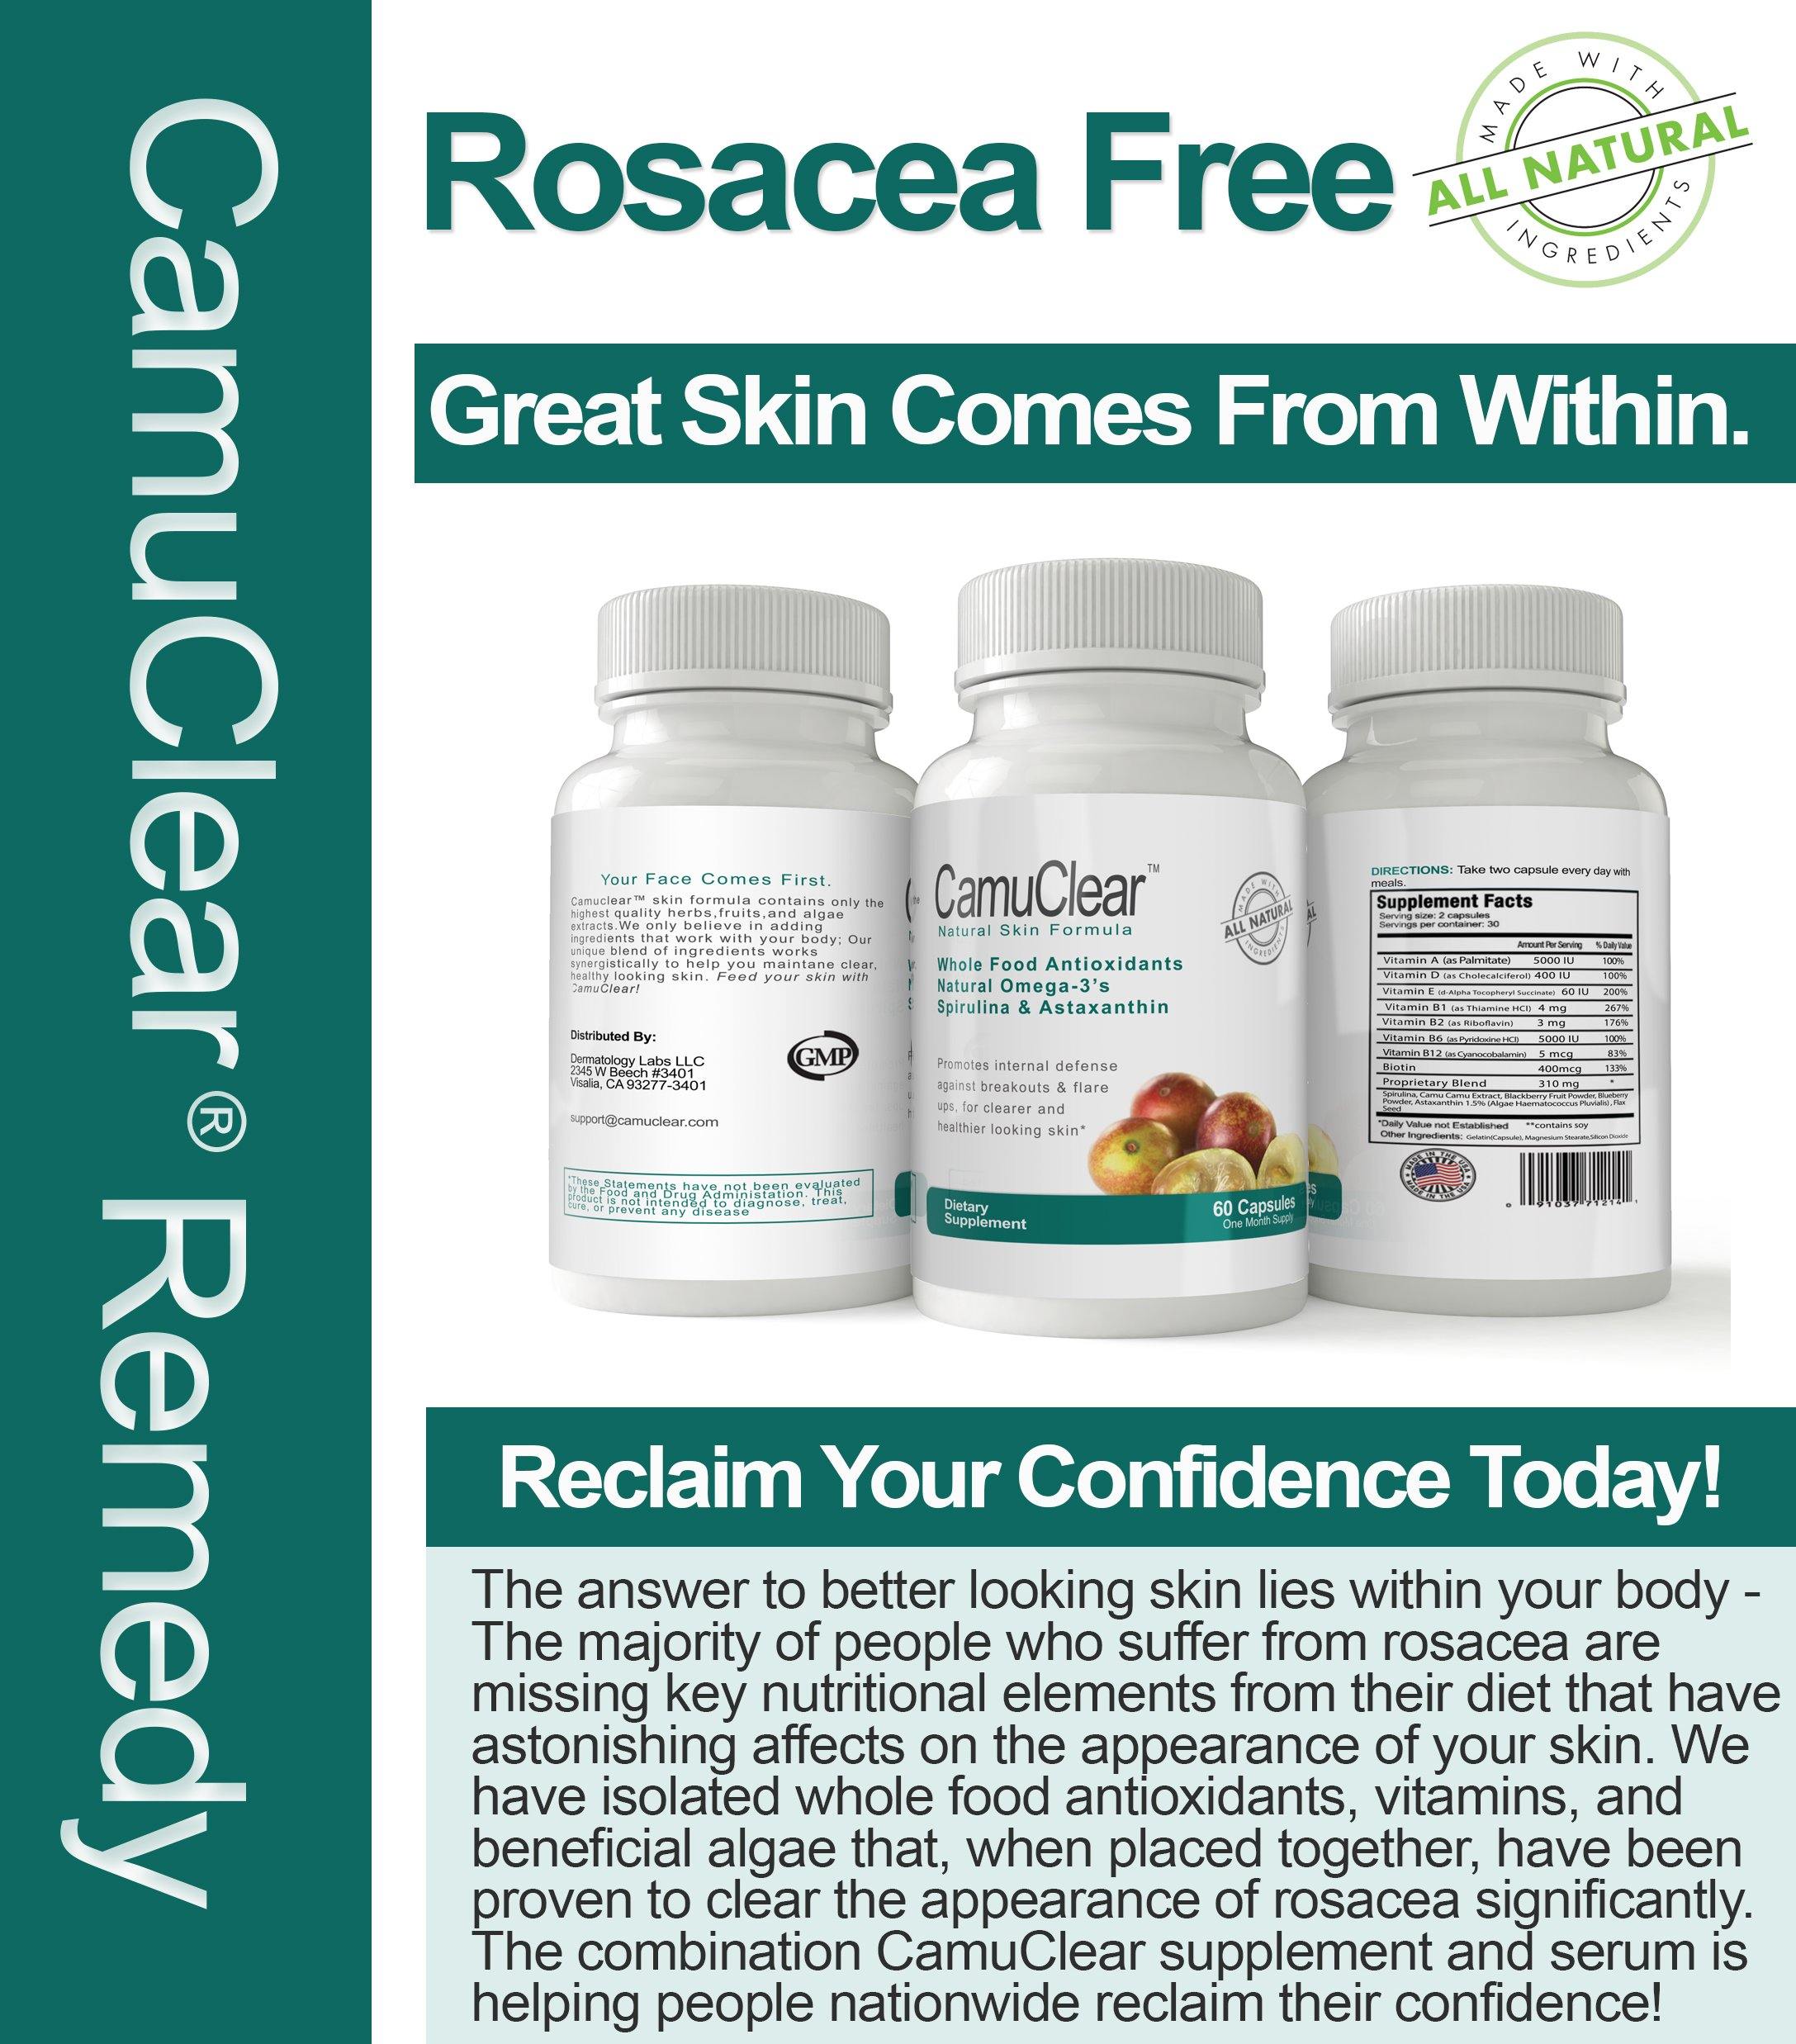 Best Rosacea Treatment, Camuclear® - Rosacea & Redness Treatment - Rosacea Skin Supplement + Rosacea Serum - 180 Capsules - 3 Month Supply - Cures Rosacea Flare Ups [100% Satisfaction Guarantee]